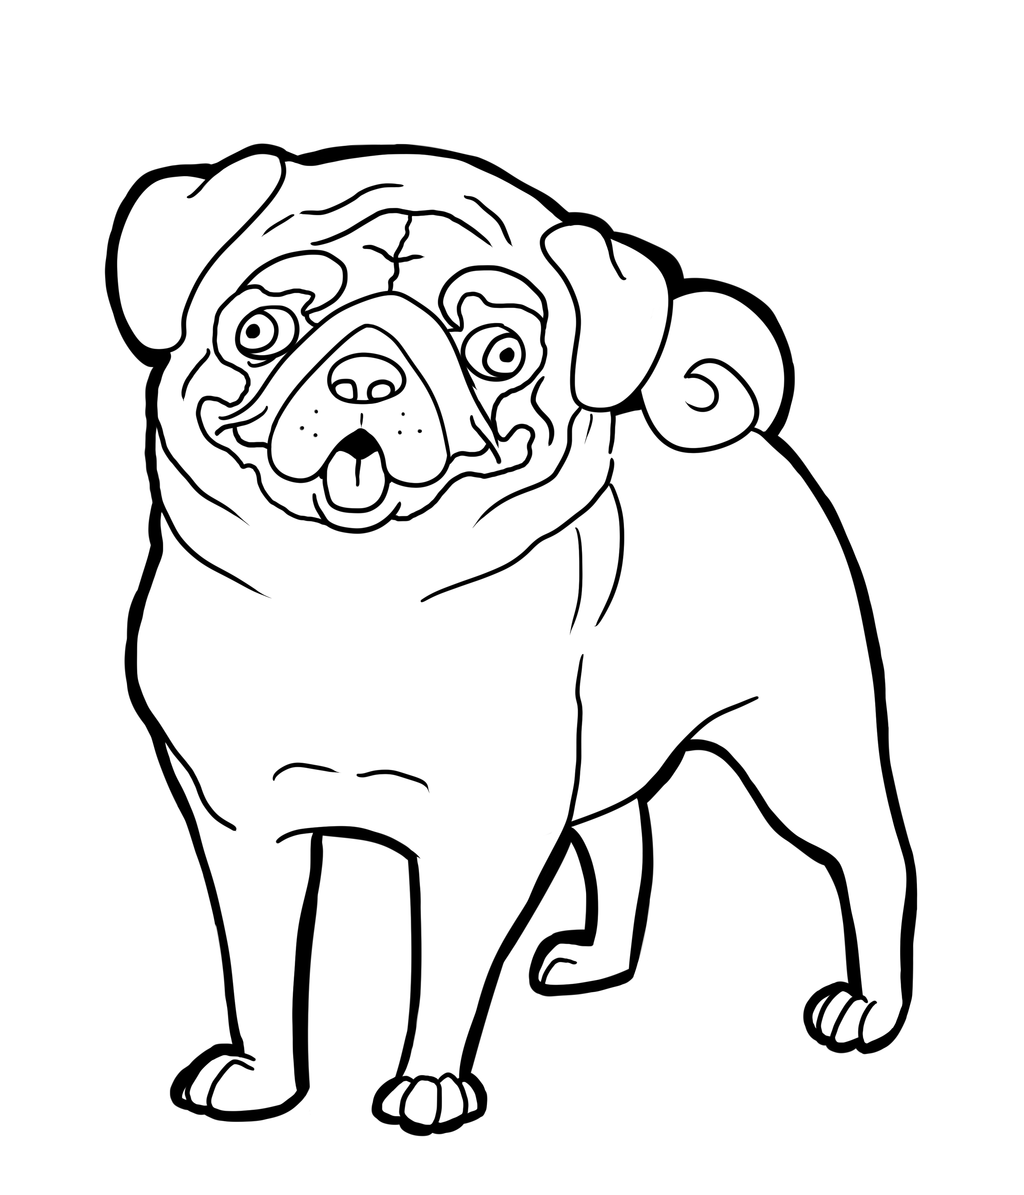 Pug coloring pages to download and print for free | Pug | Pinterest ...